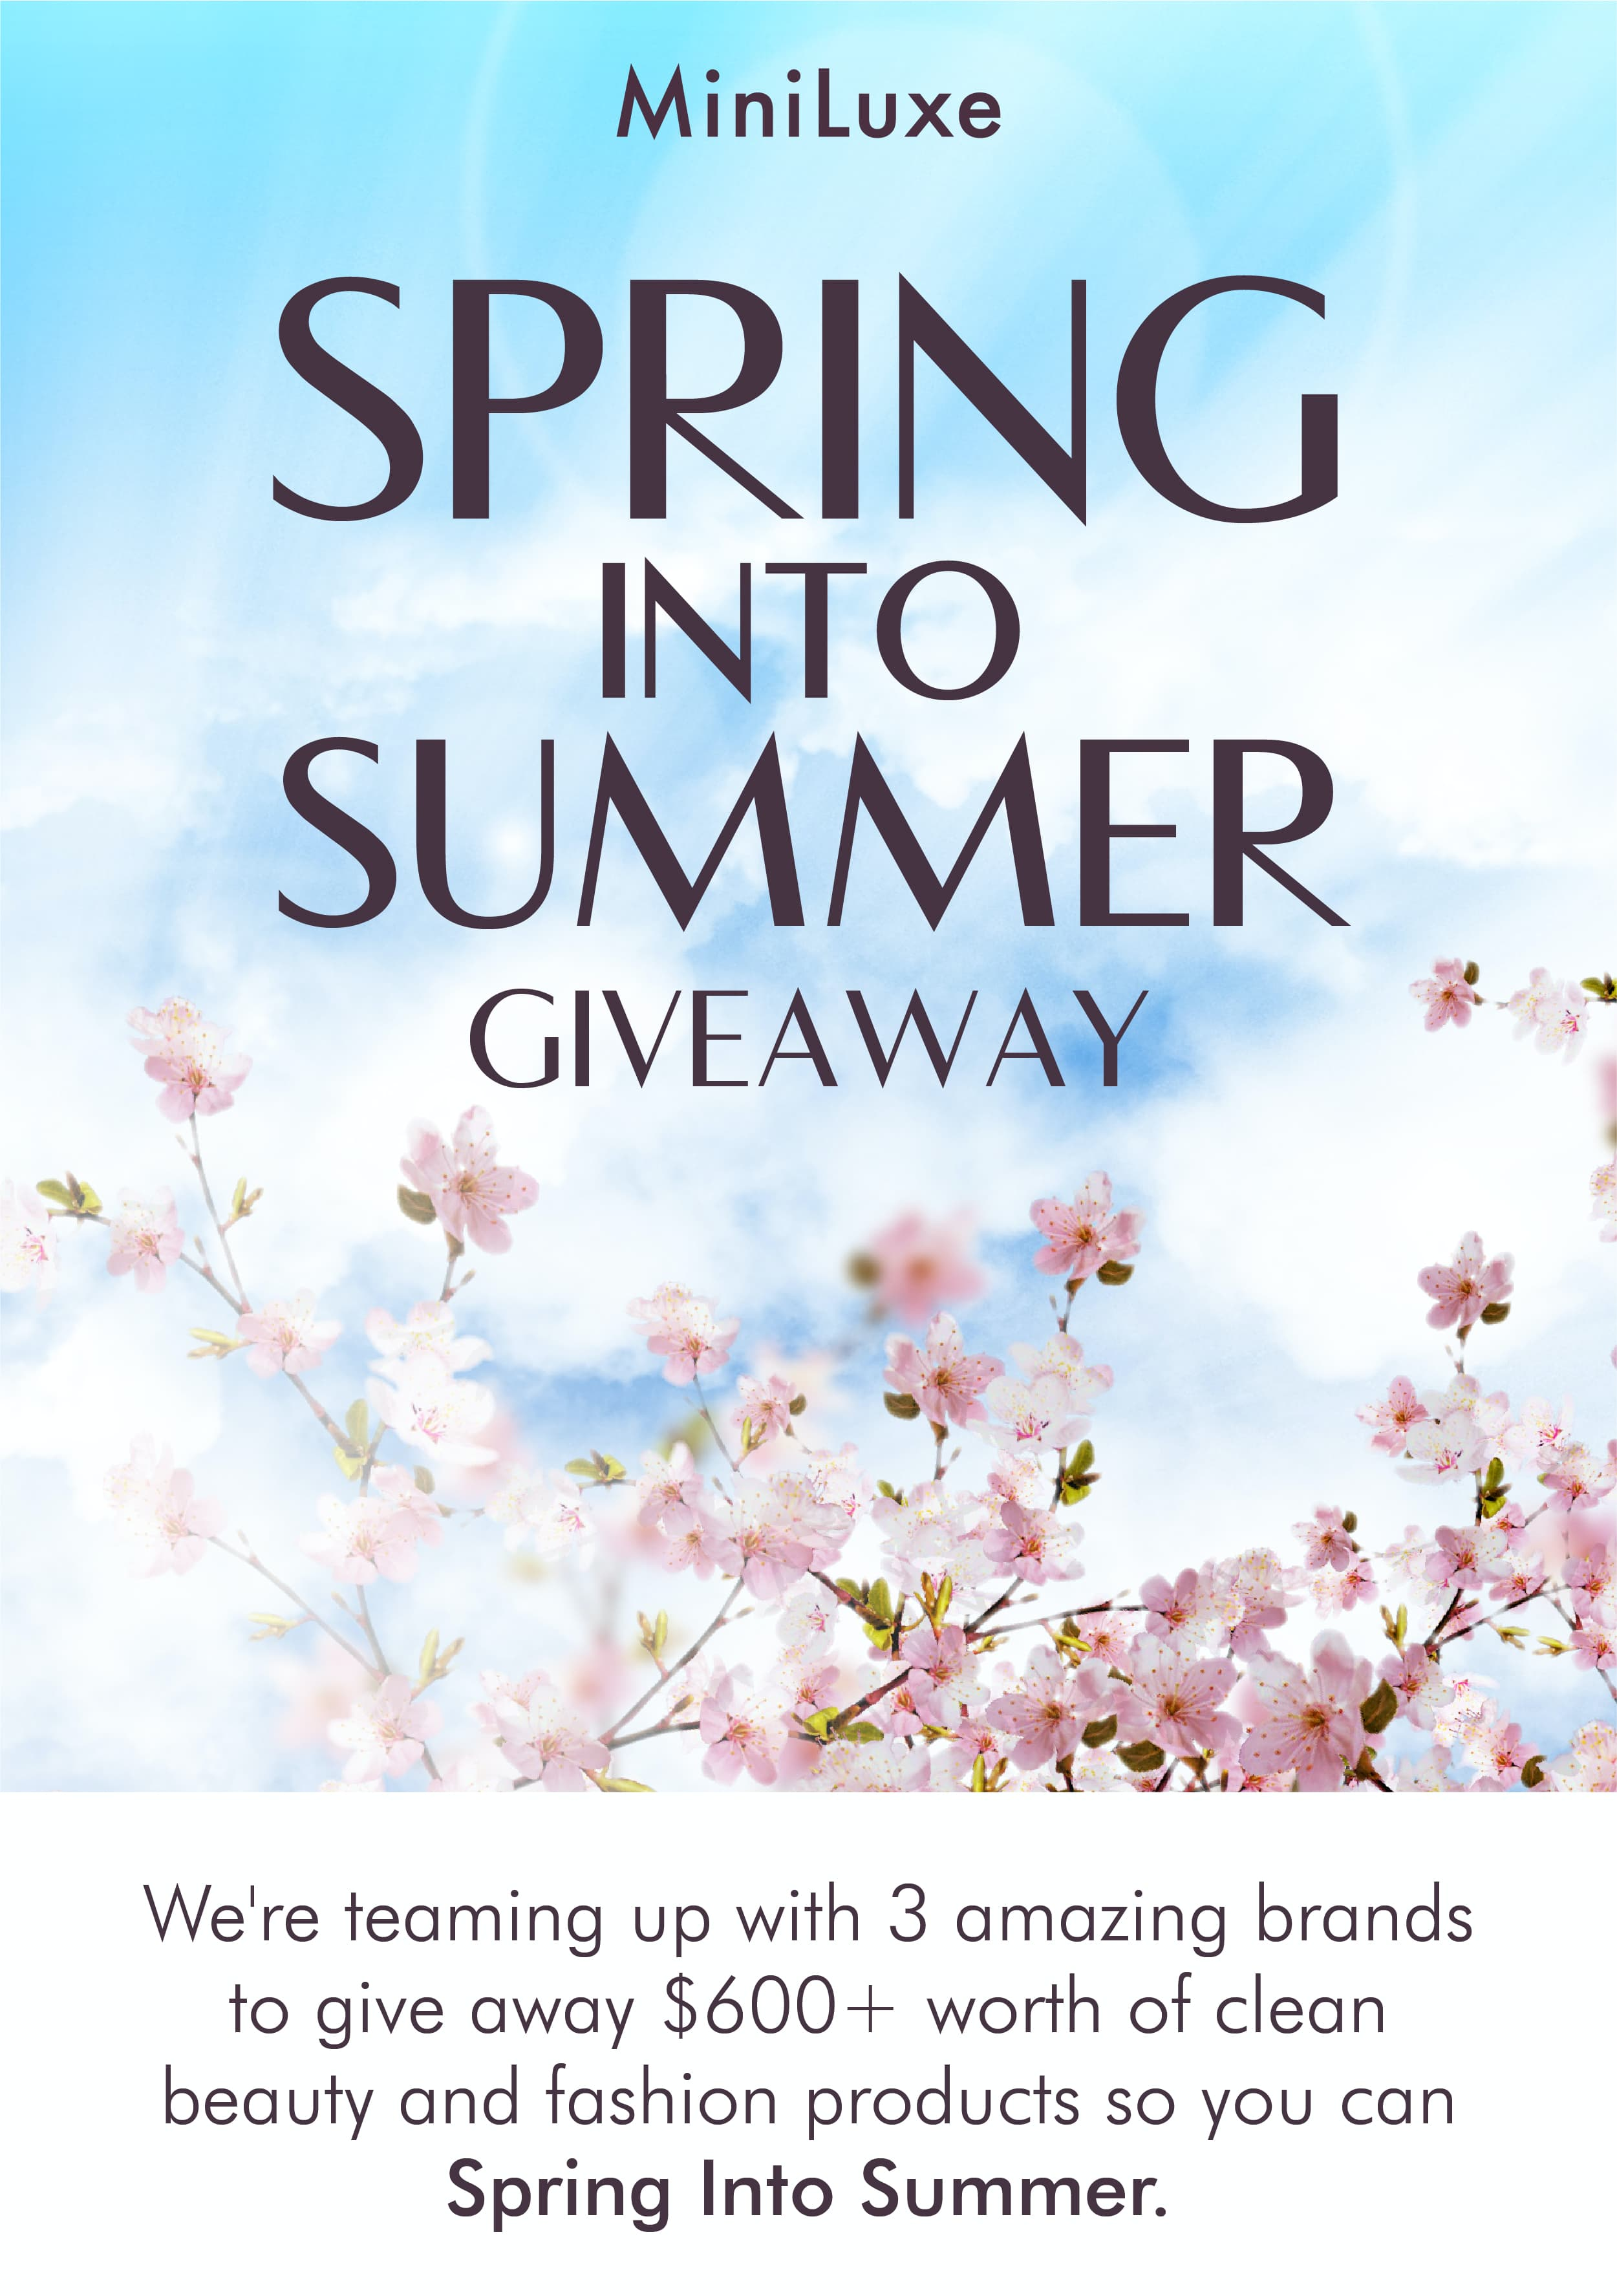 We're Teaming Up With 3 Amazing Brands To Giveaway $600 Worth Of Clean Beauty And Fashion Products